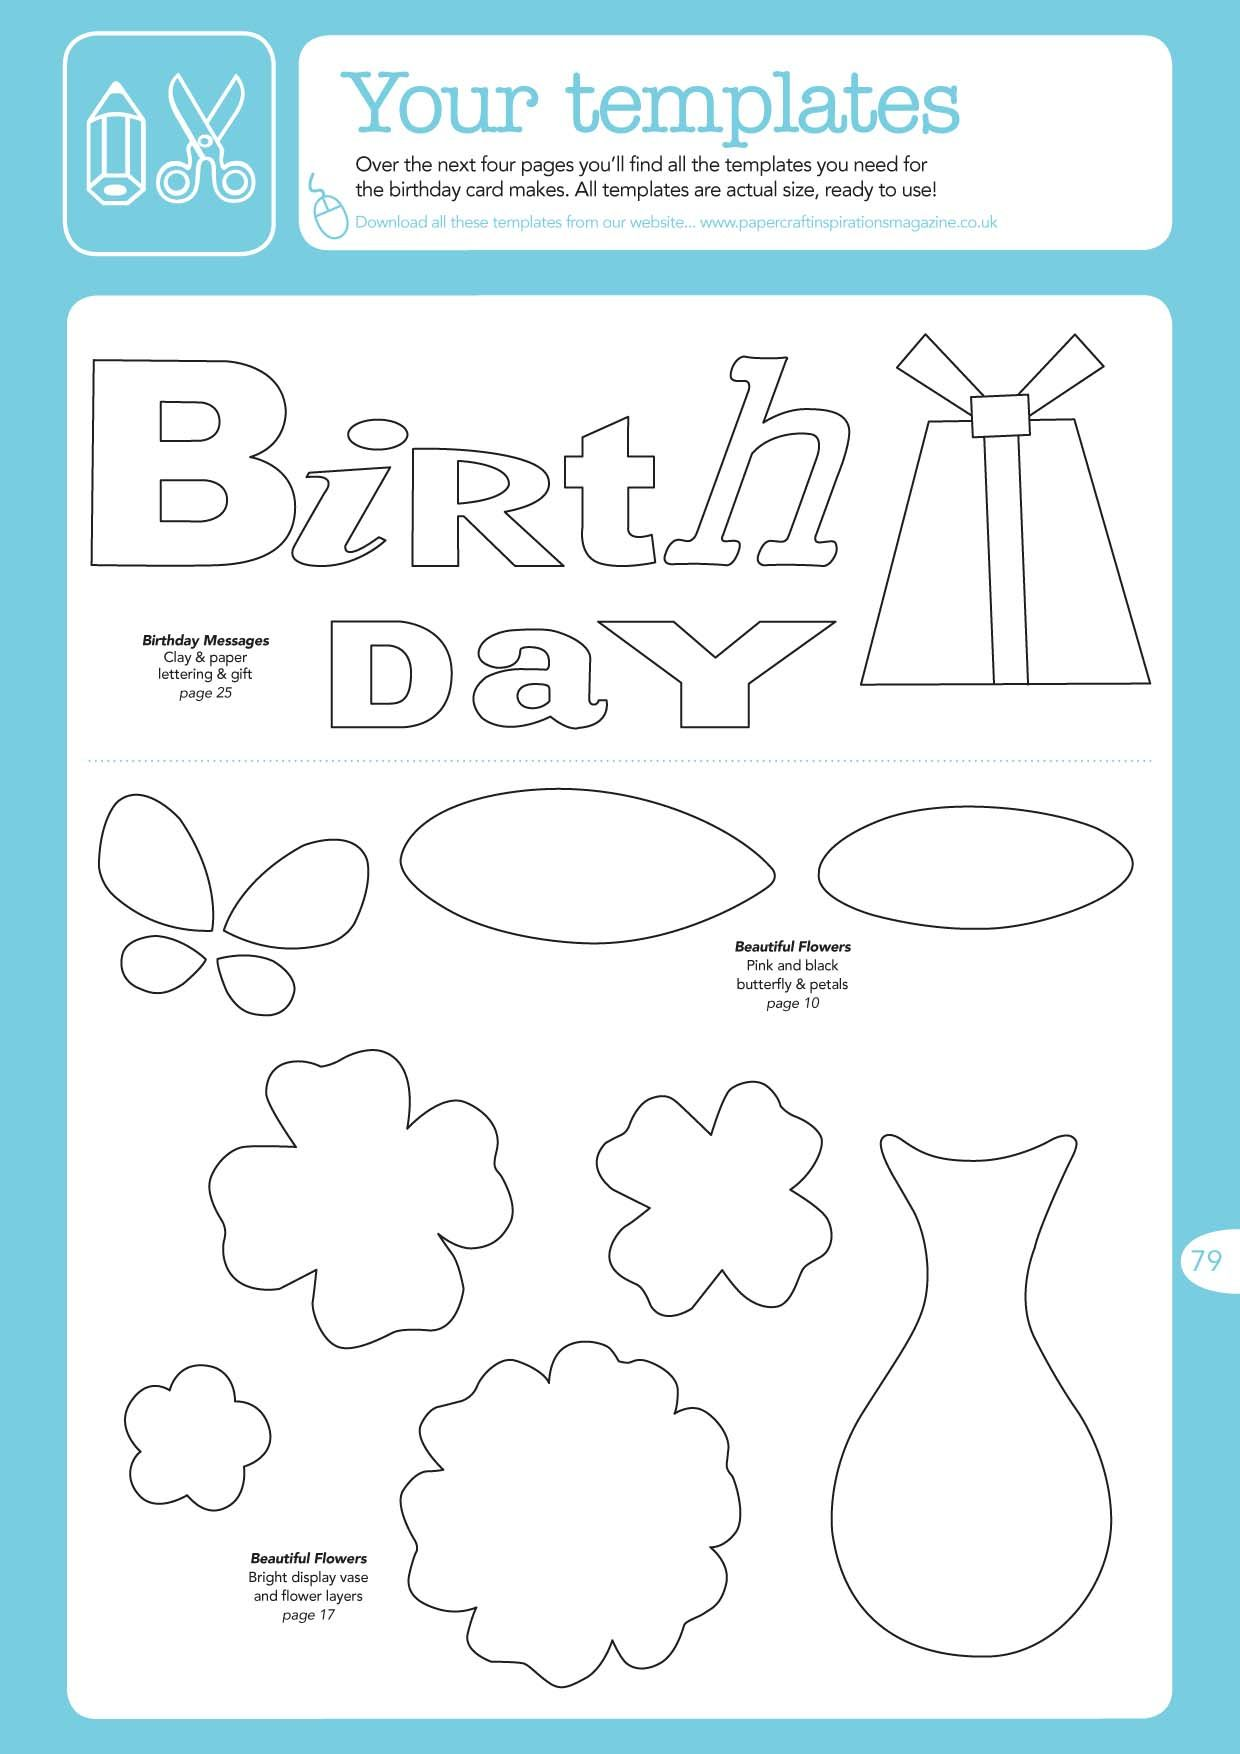 Craft Templates  Free Birthday Card Ideas Templates To Download